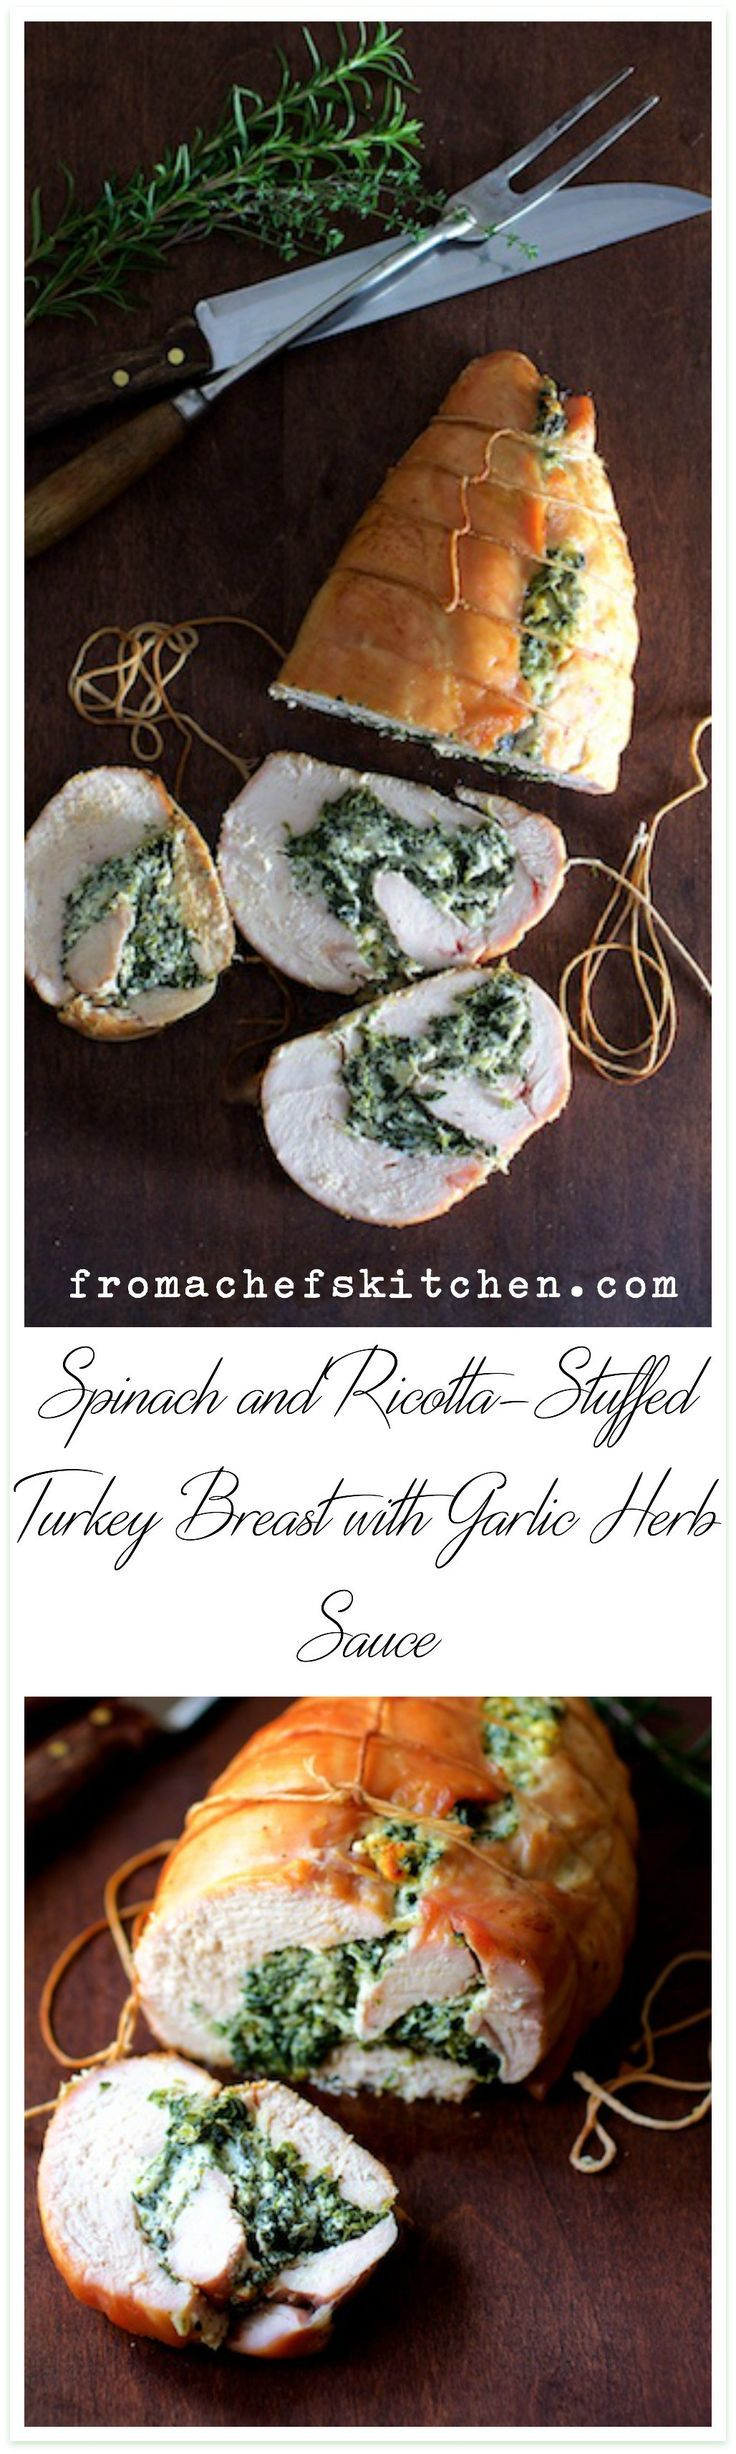 Spinach and Ricotta-Stuffed Turkey Breast with Garlic - Herb Sauce